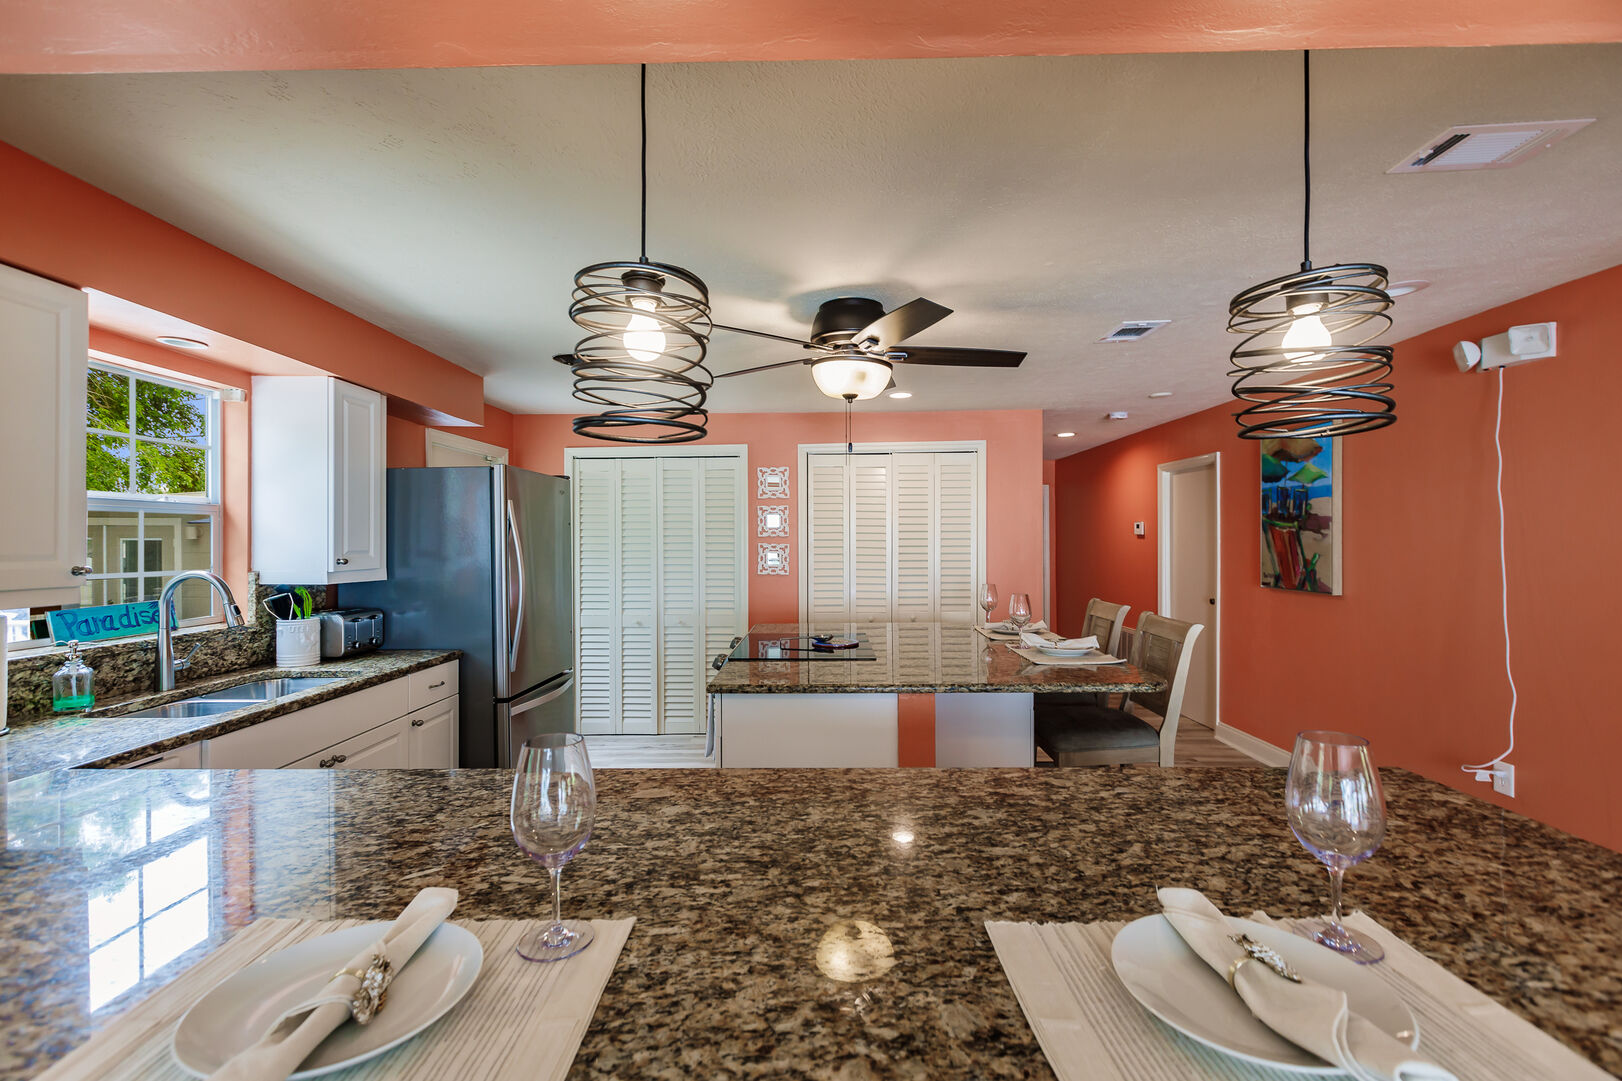 Modern Dining and Kitchen Area in Beach Paradise